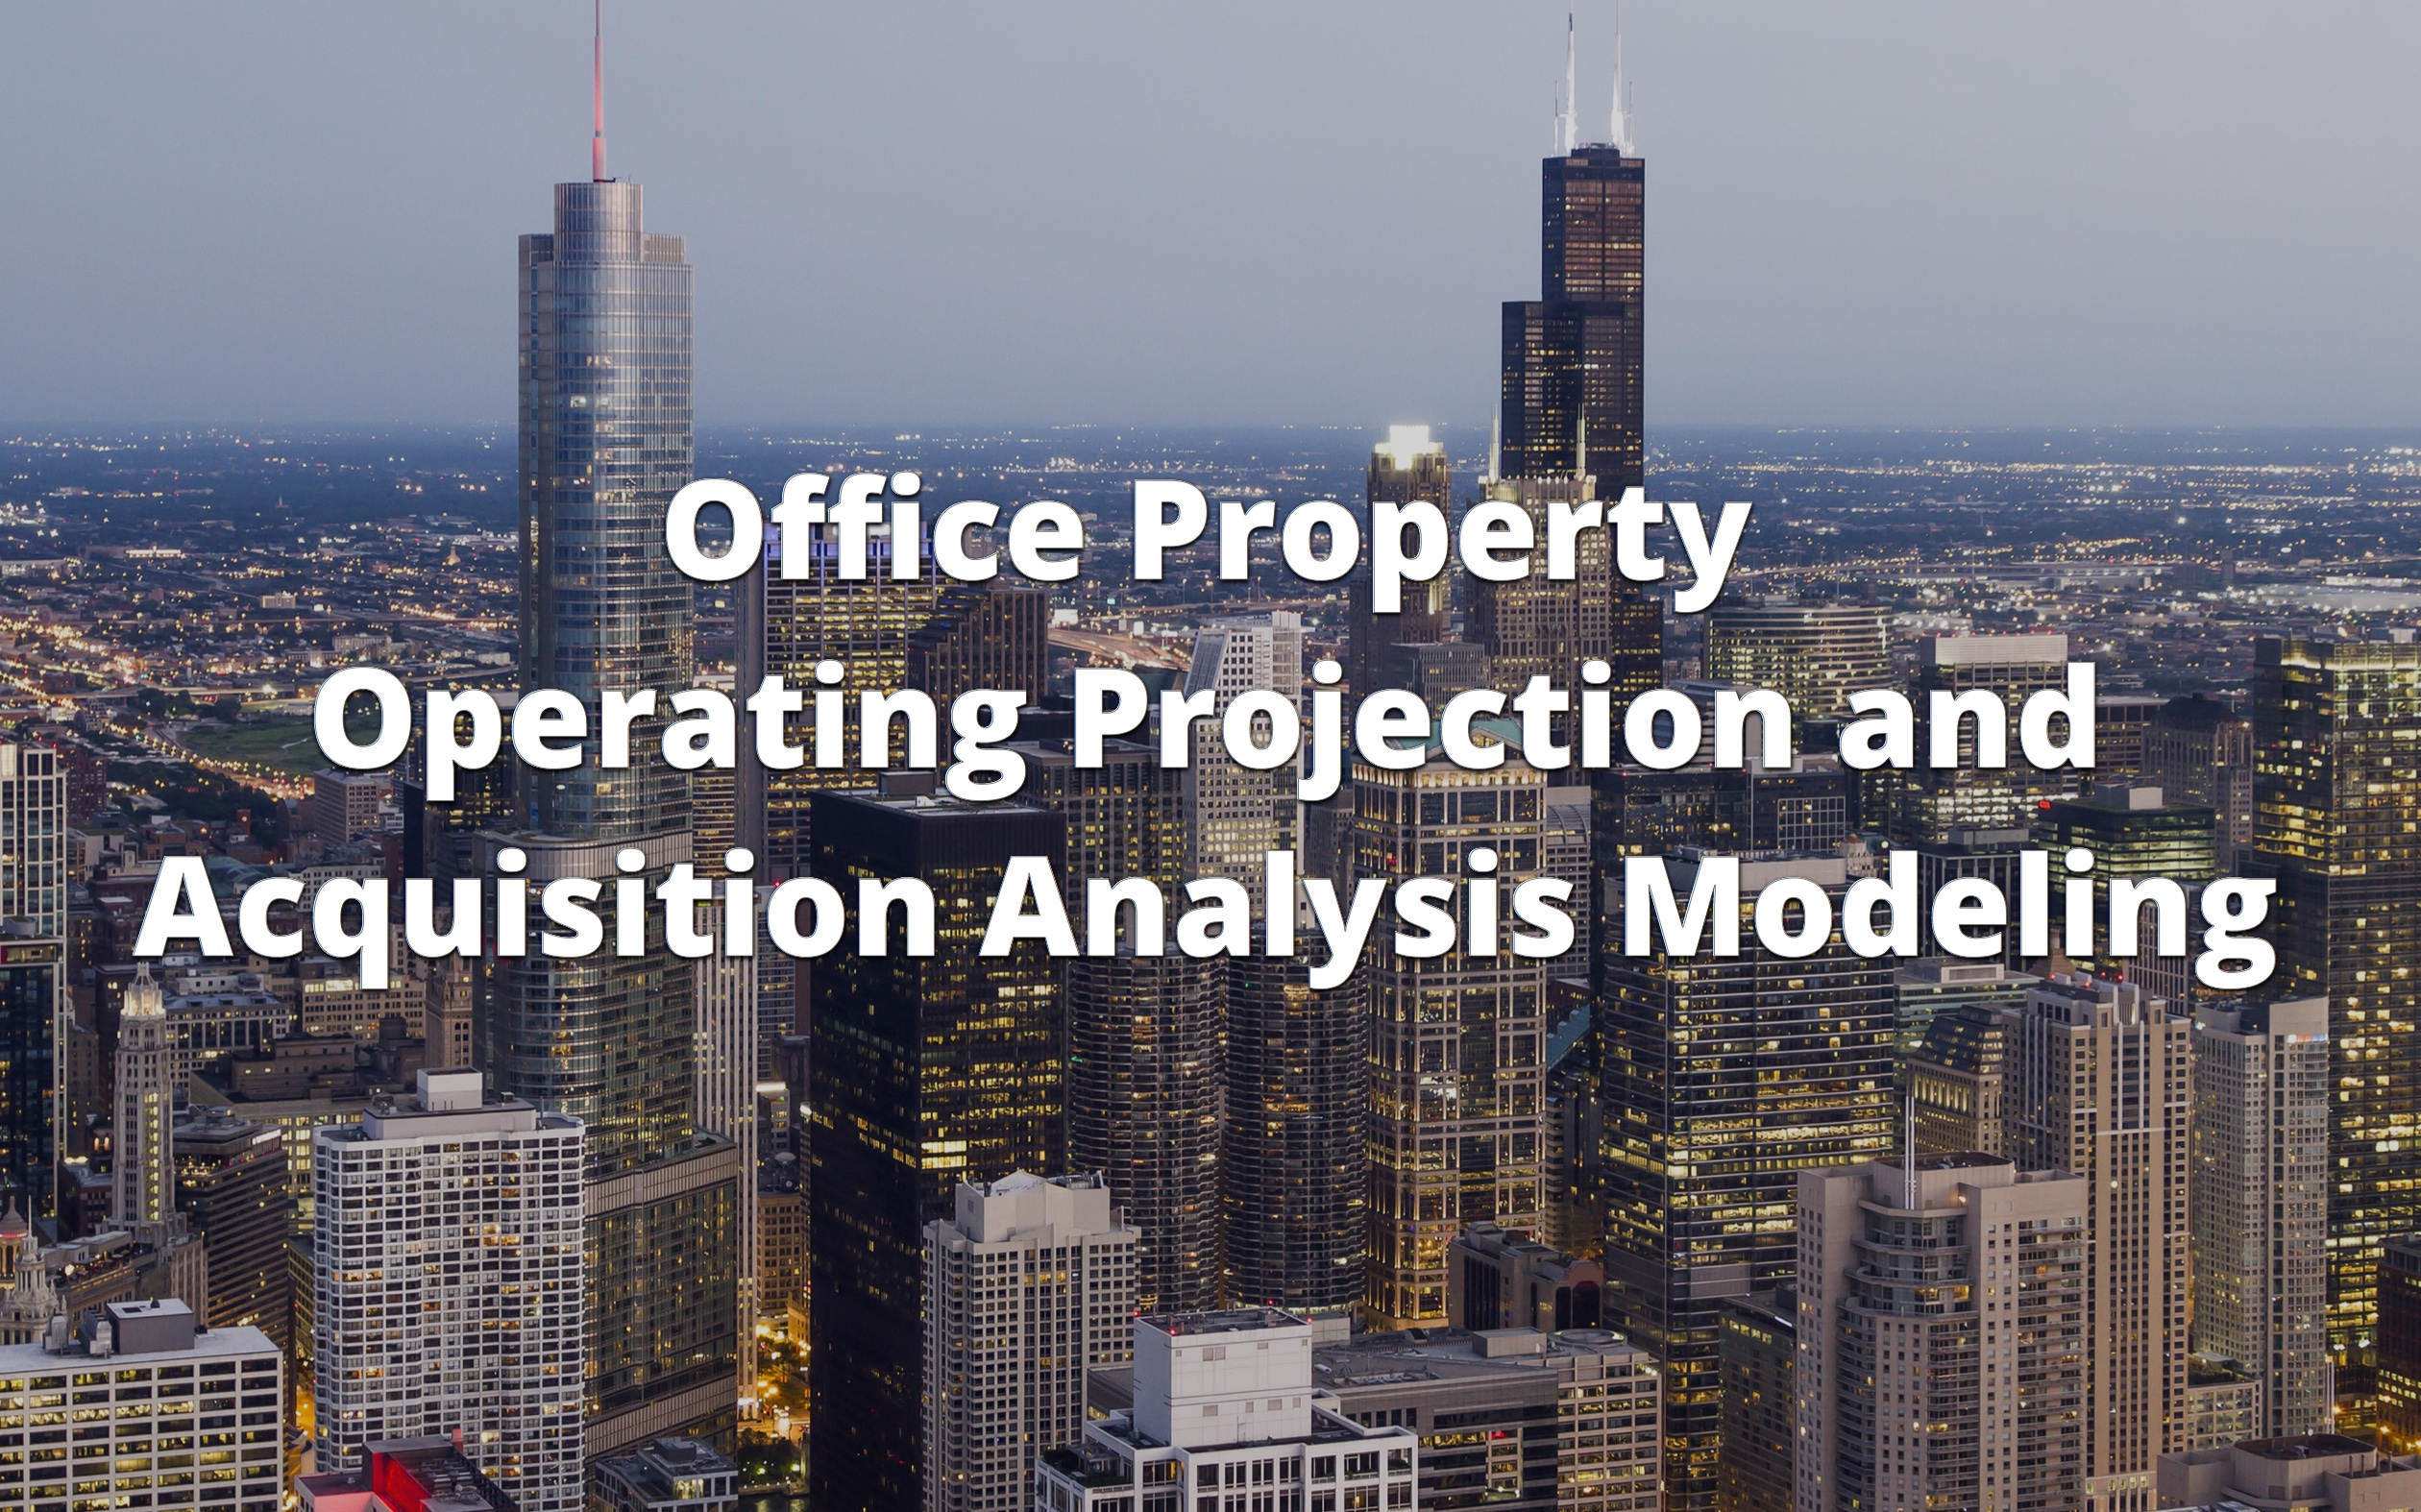 Office Property Operating Projection and Acquisition Analysis Modeling